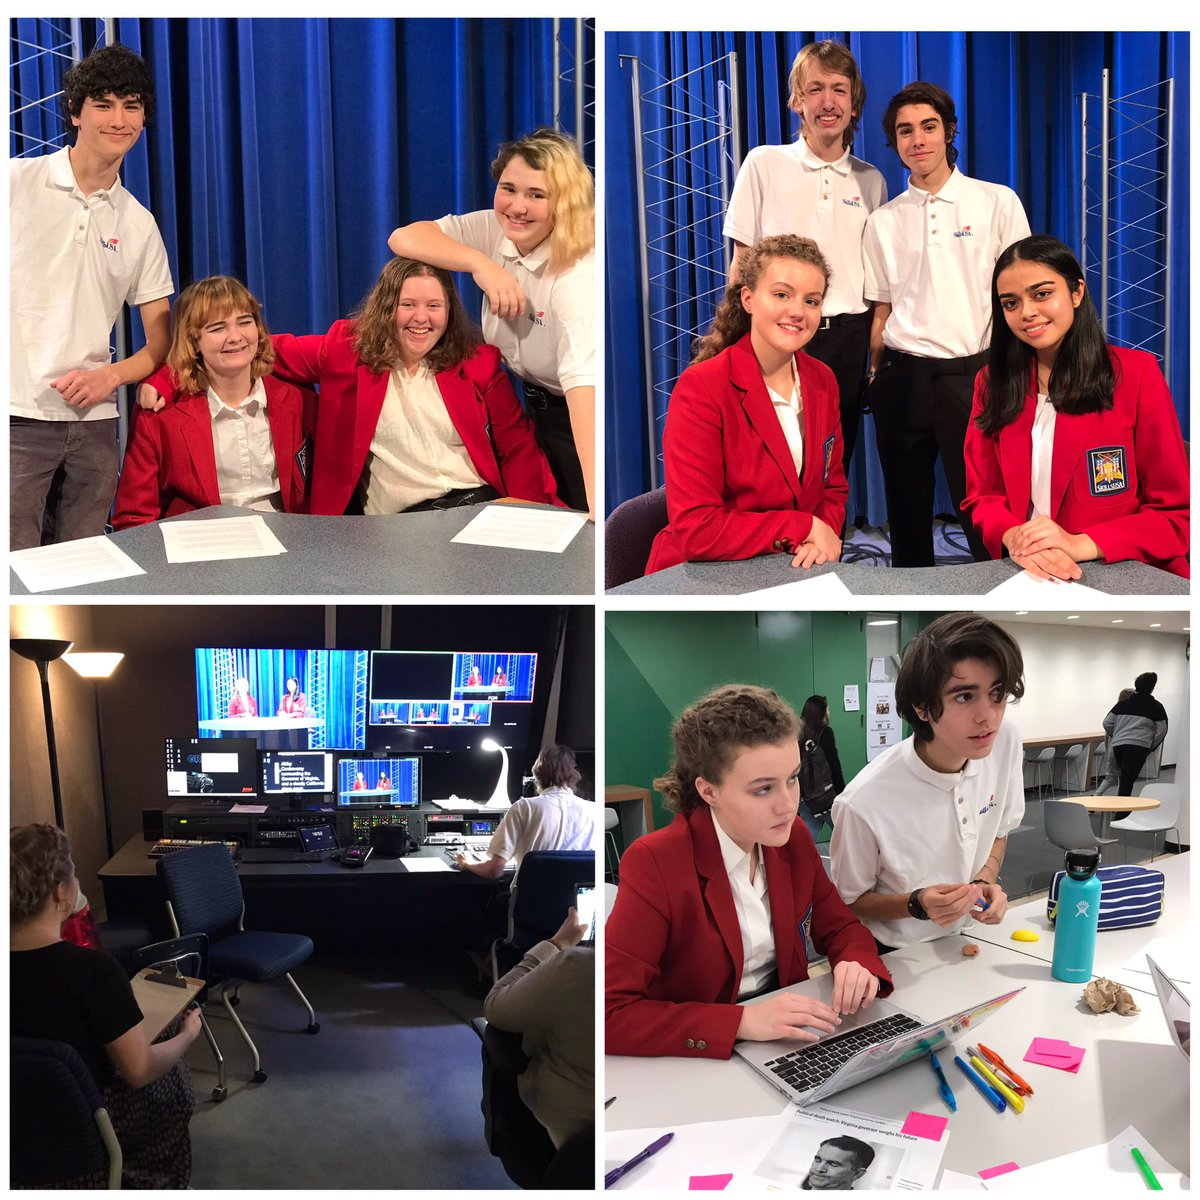 TV Prod students compete in the SkillsUSA Broadcast News contest at the ACC. <a target='_blank' href='http://twitter.com/ACC_PBL'>@ACC_PBL</a> <a target='_blank' href='http://twitter.com/arlingtontechcc'>@arlingtontechcc</a> <a target='_blank' href='http://twitter.com/CharlesRandolp3'>@CharlesRandolp3</a> <a target='_blank' href='http://twitter.com/Margaretchungcc'>@Margaretchungcc</a> <a target='_blank' href='https://t.co/LFywbSN21Q'>https://t.co/LFywbSN21Q</a>